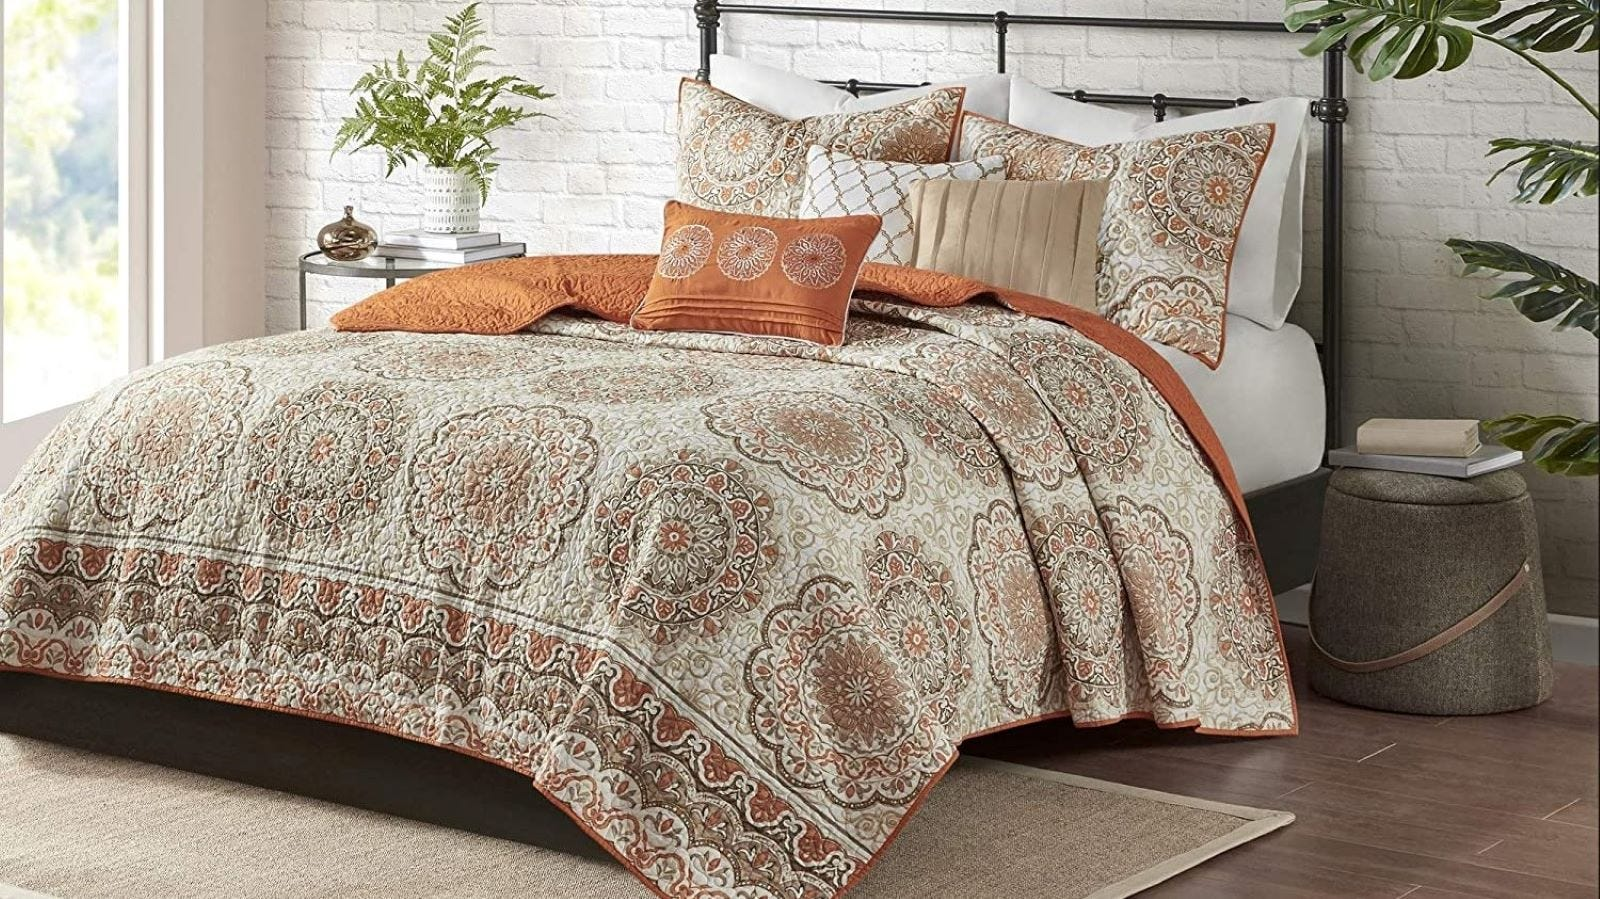 The Madison Park Quilt Set in Tangiers Orange on a metal bed.